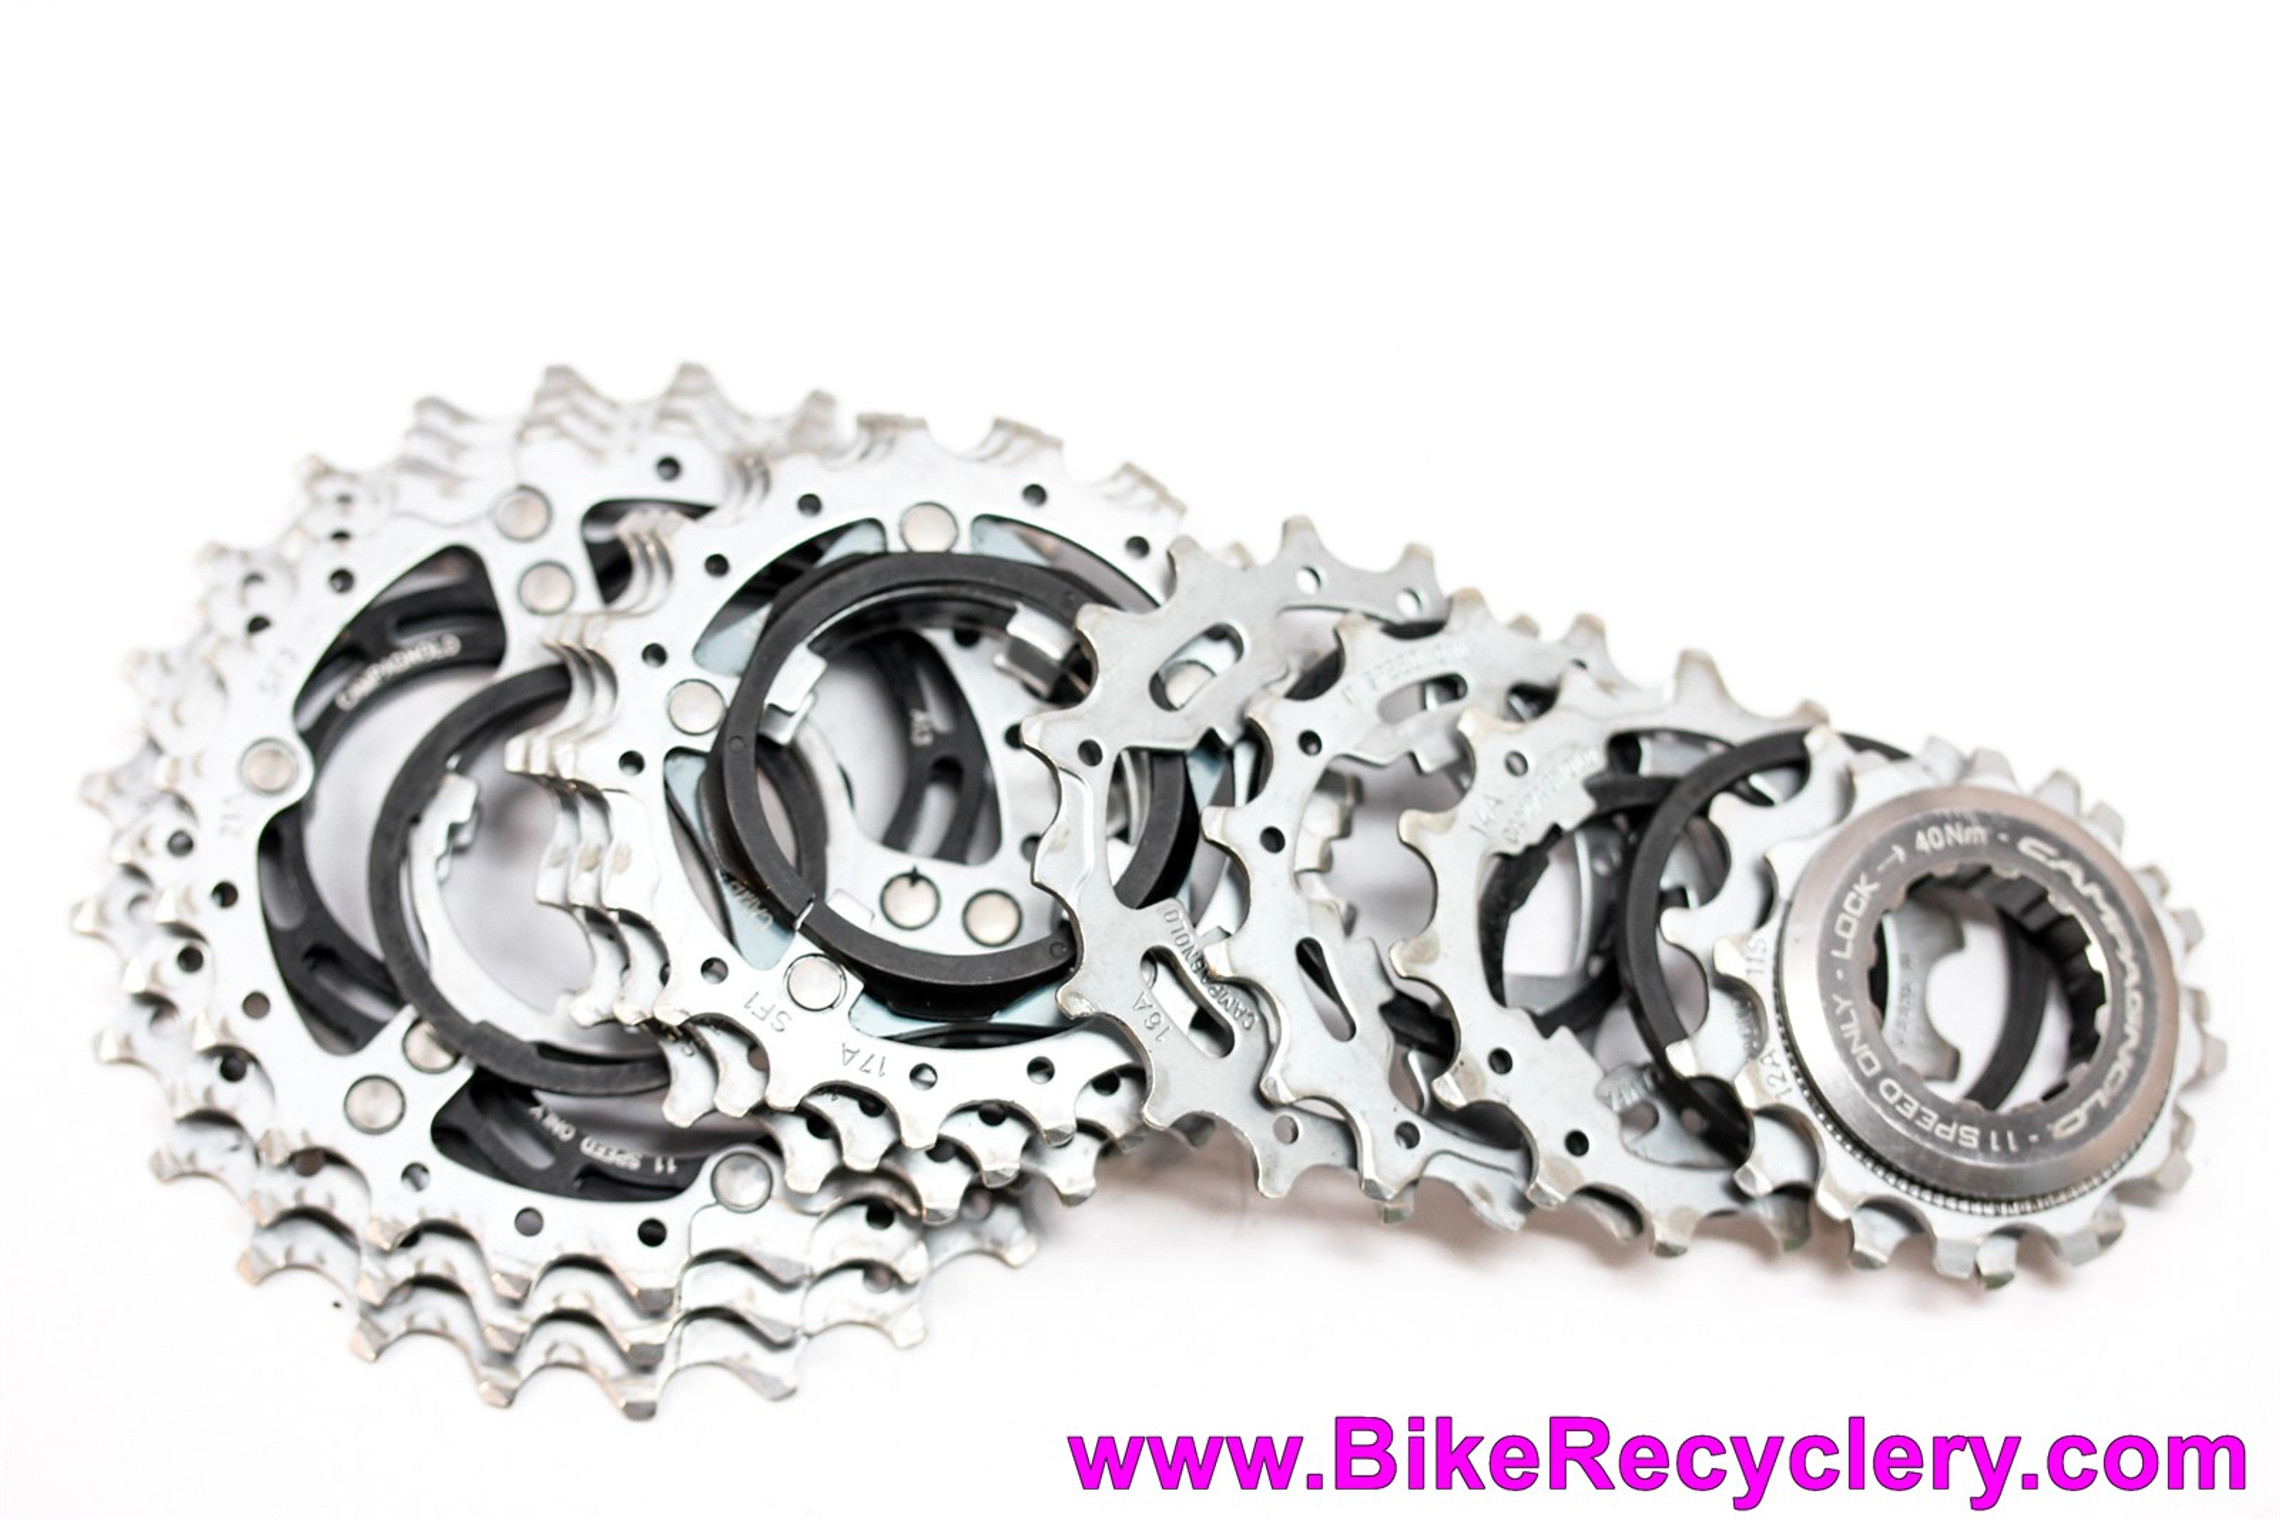 Campagnolo Chorus 11 Speed Cassette: 12-25t (Almost New <100 Miles)